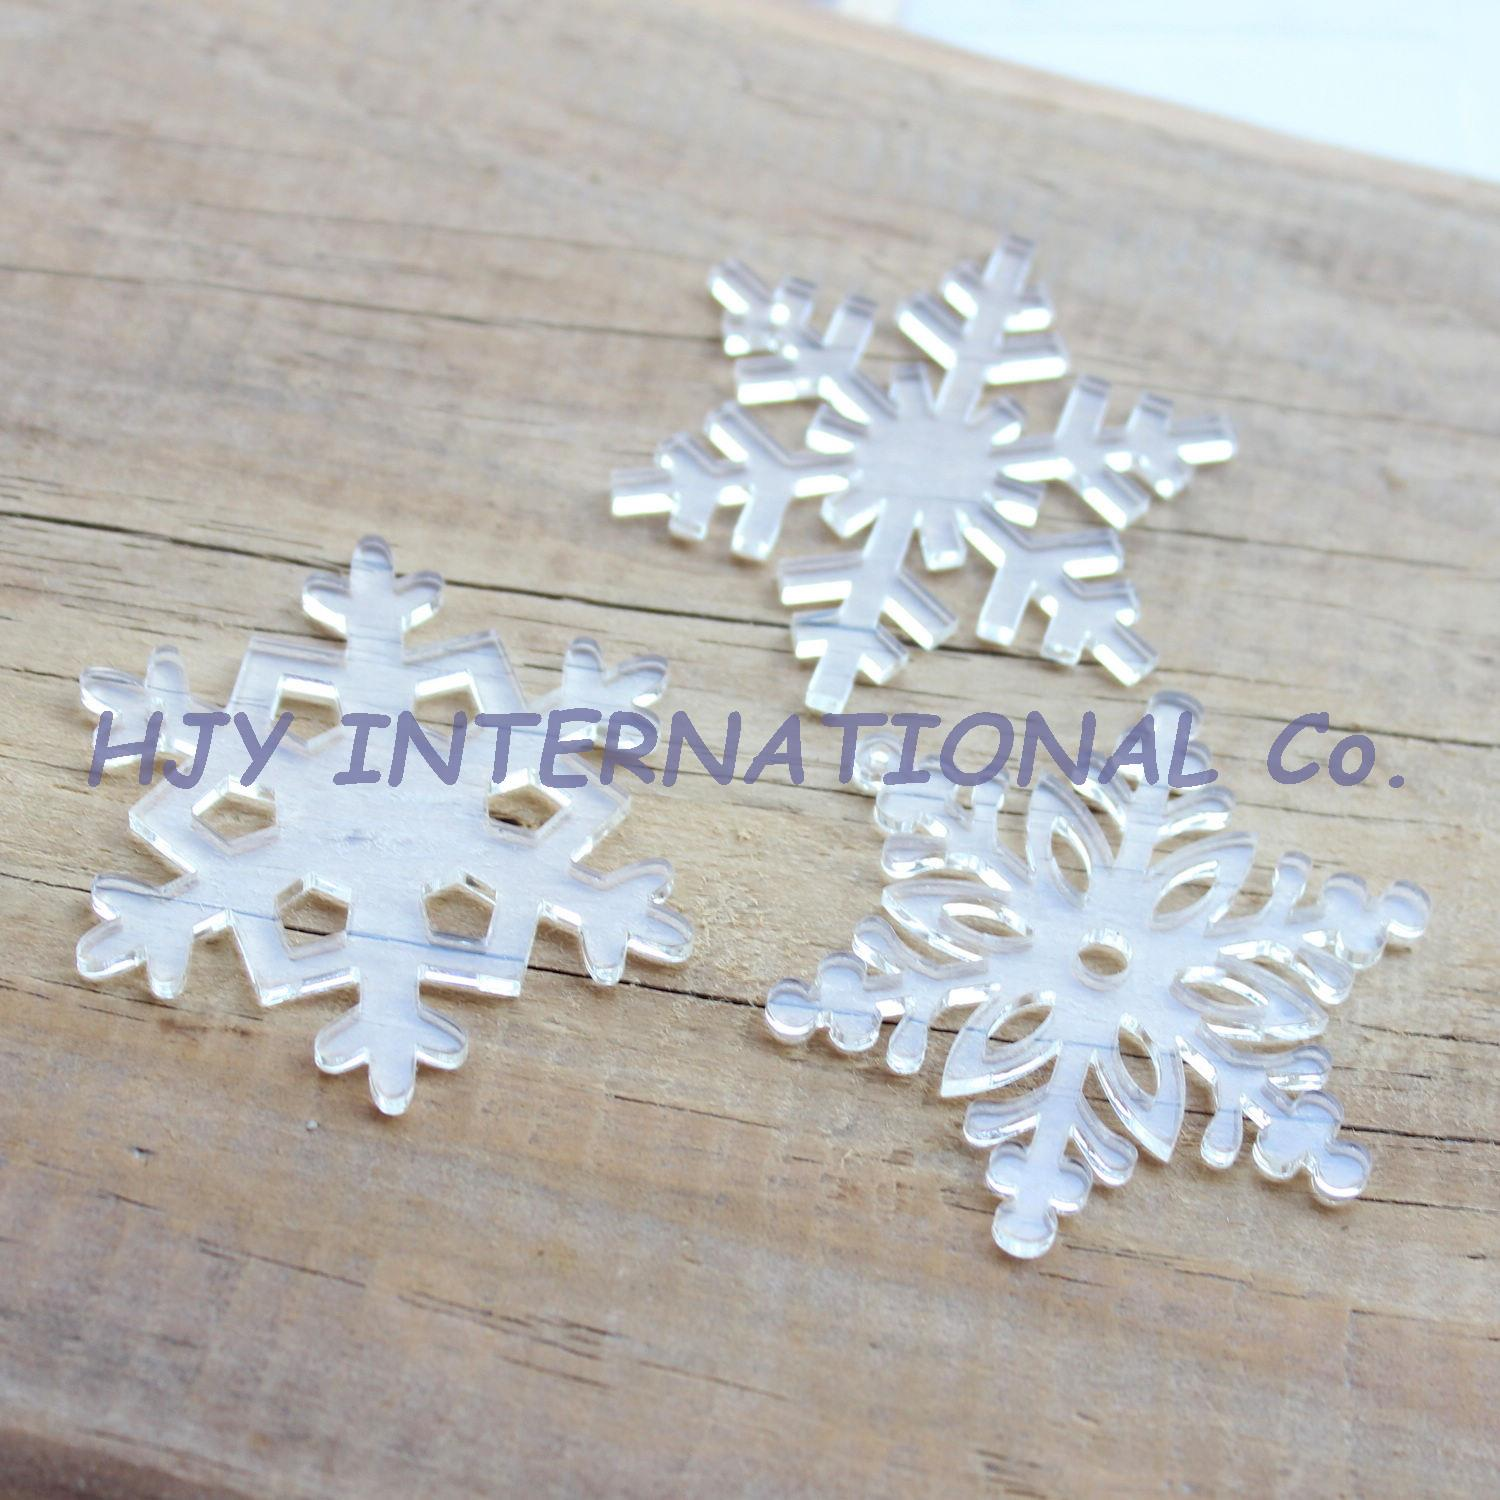 Acrylic clear ornaments -  3styles 30pcs Lot 50mm Assorted Clear Acrylic Snowflakes Christmas Ornaments 2 0